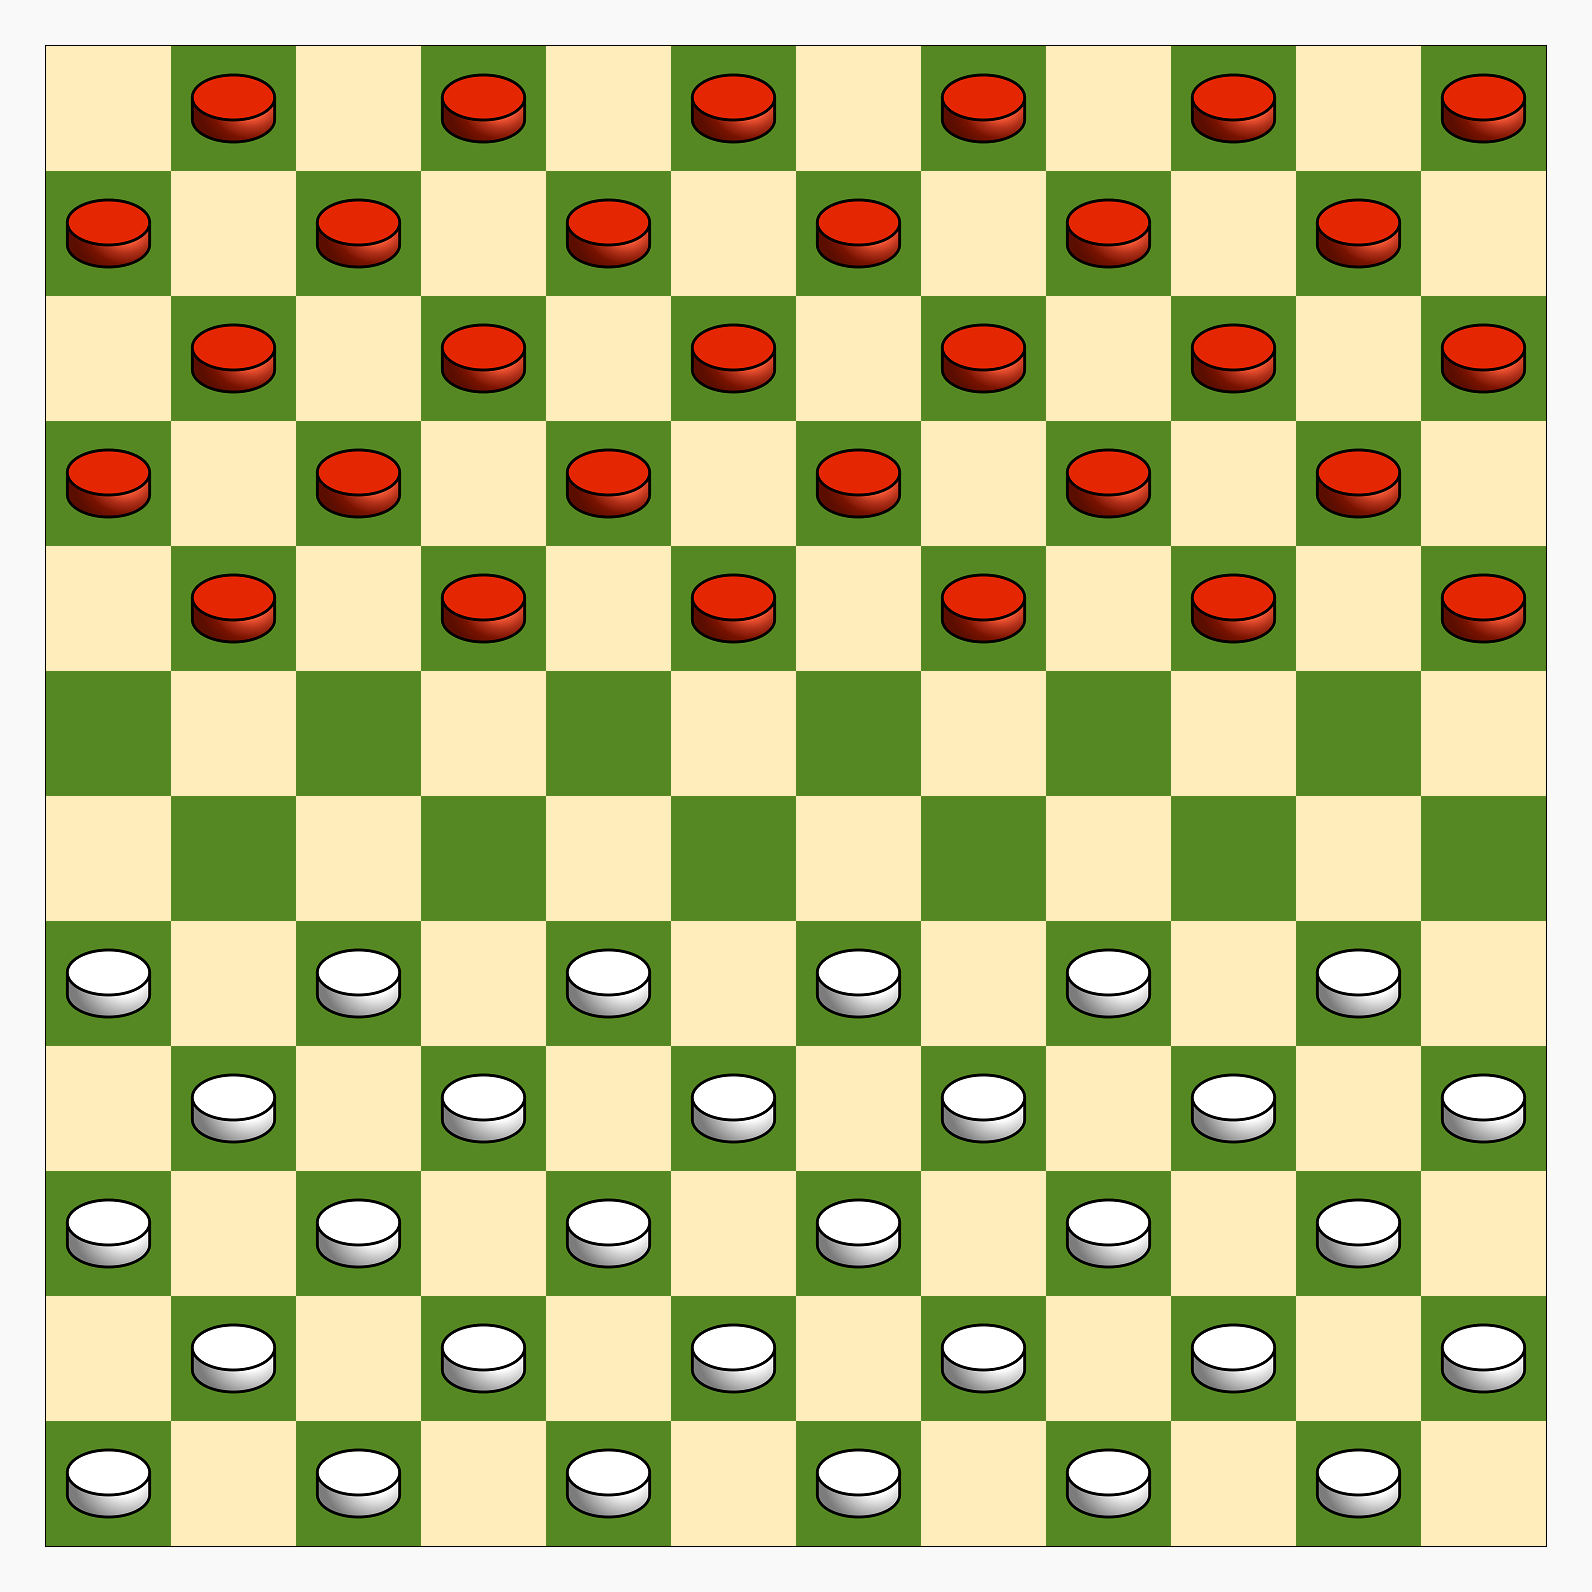 image regarding Printable Checkers Board identified as Canadian checkers - Wikipedia